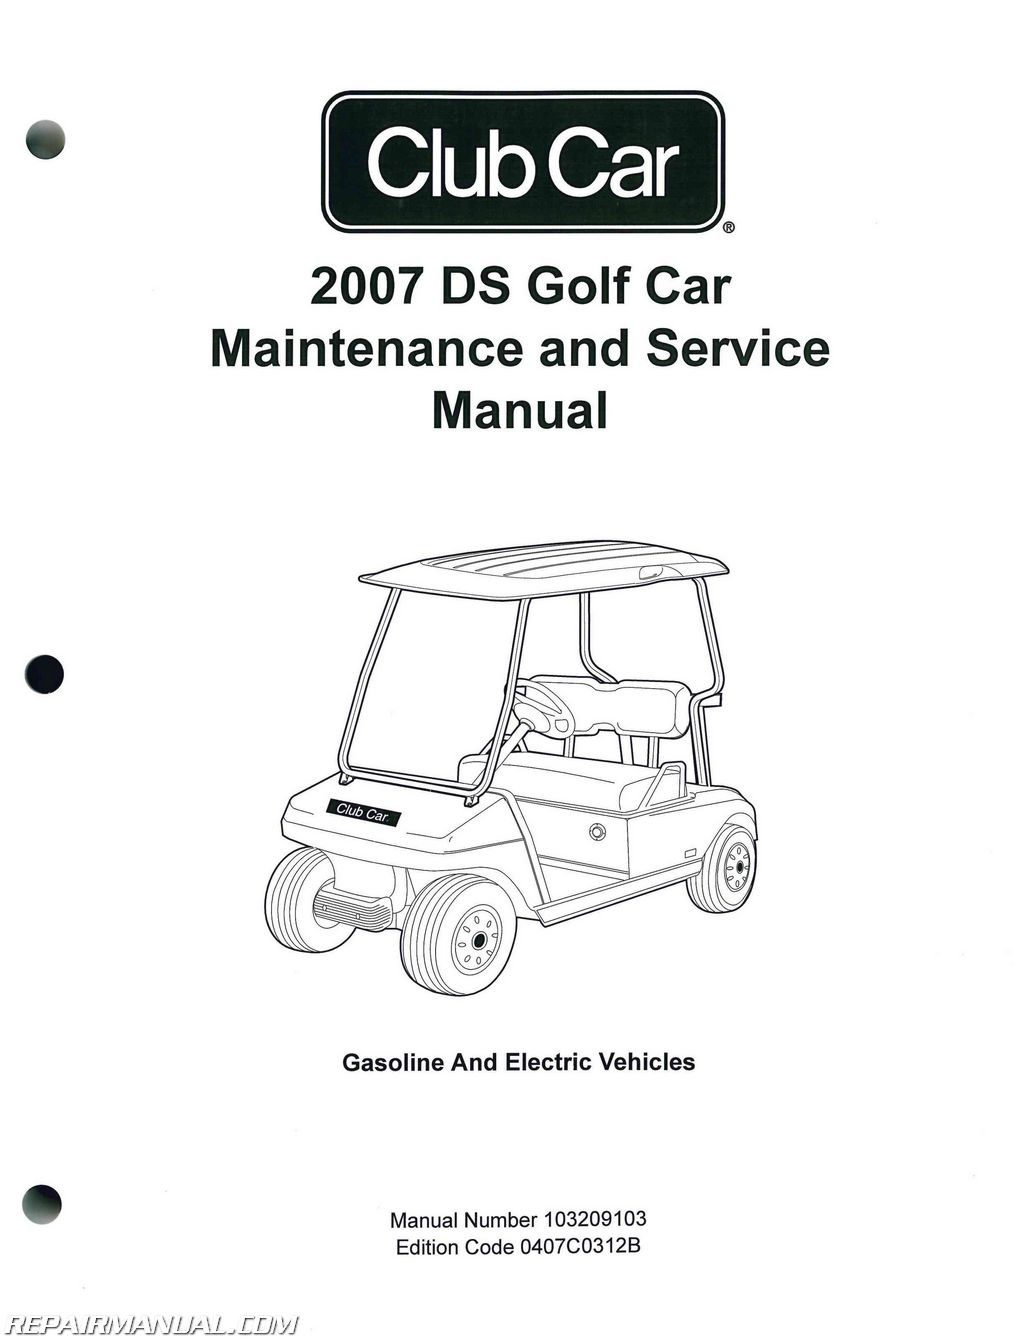 1988 Ezgo Golf Cart Parts Diagram Electrical Wiring 1987 Marathon Club Car Manuals And Diagrams Trusted U2022 Rh Soulmatestyle Co